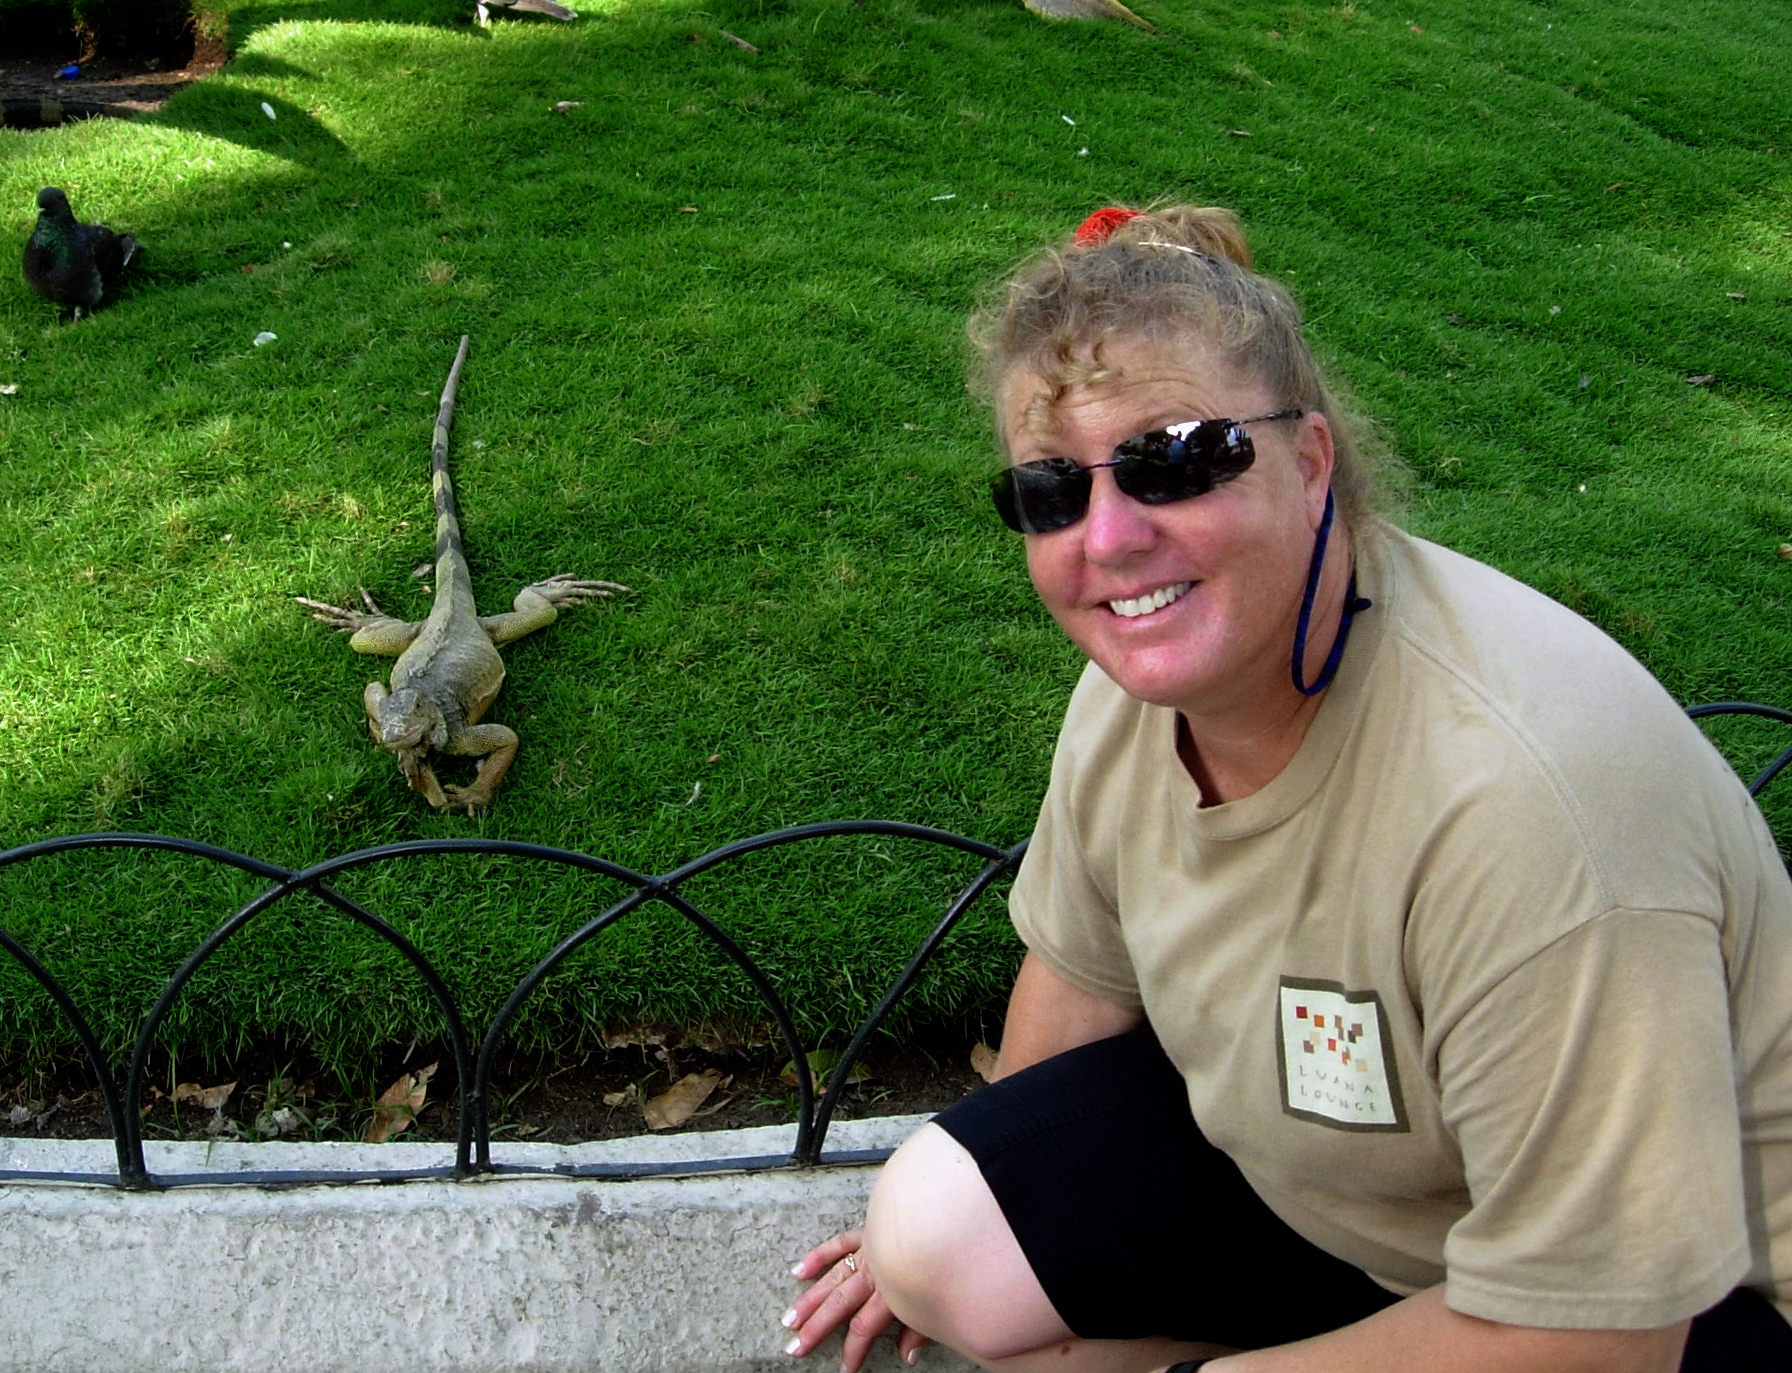 Lynn at Iguana Park in Guayaquil